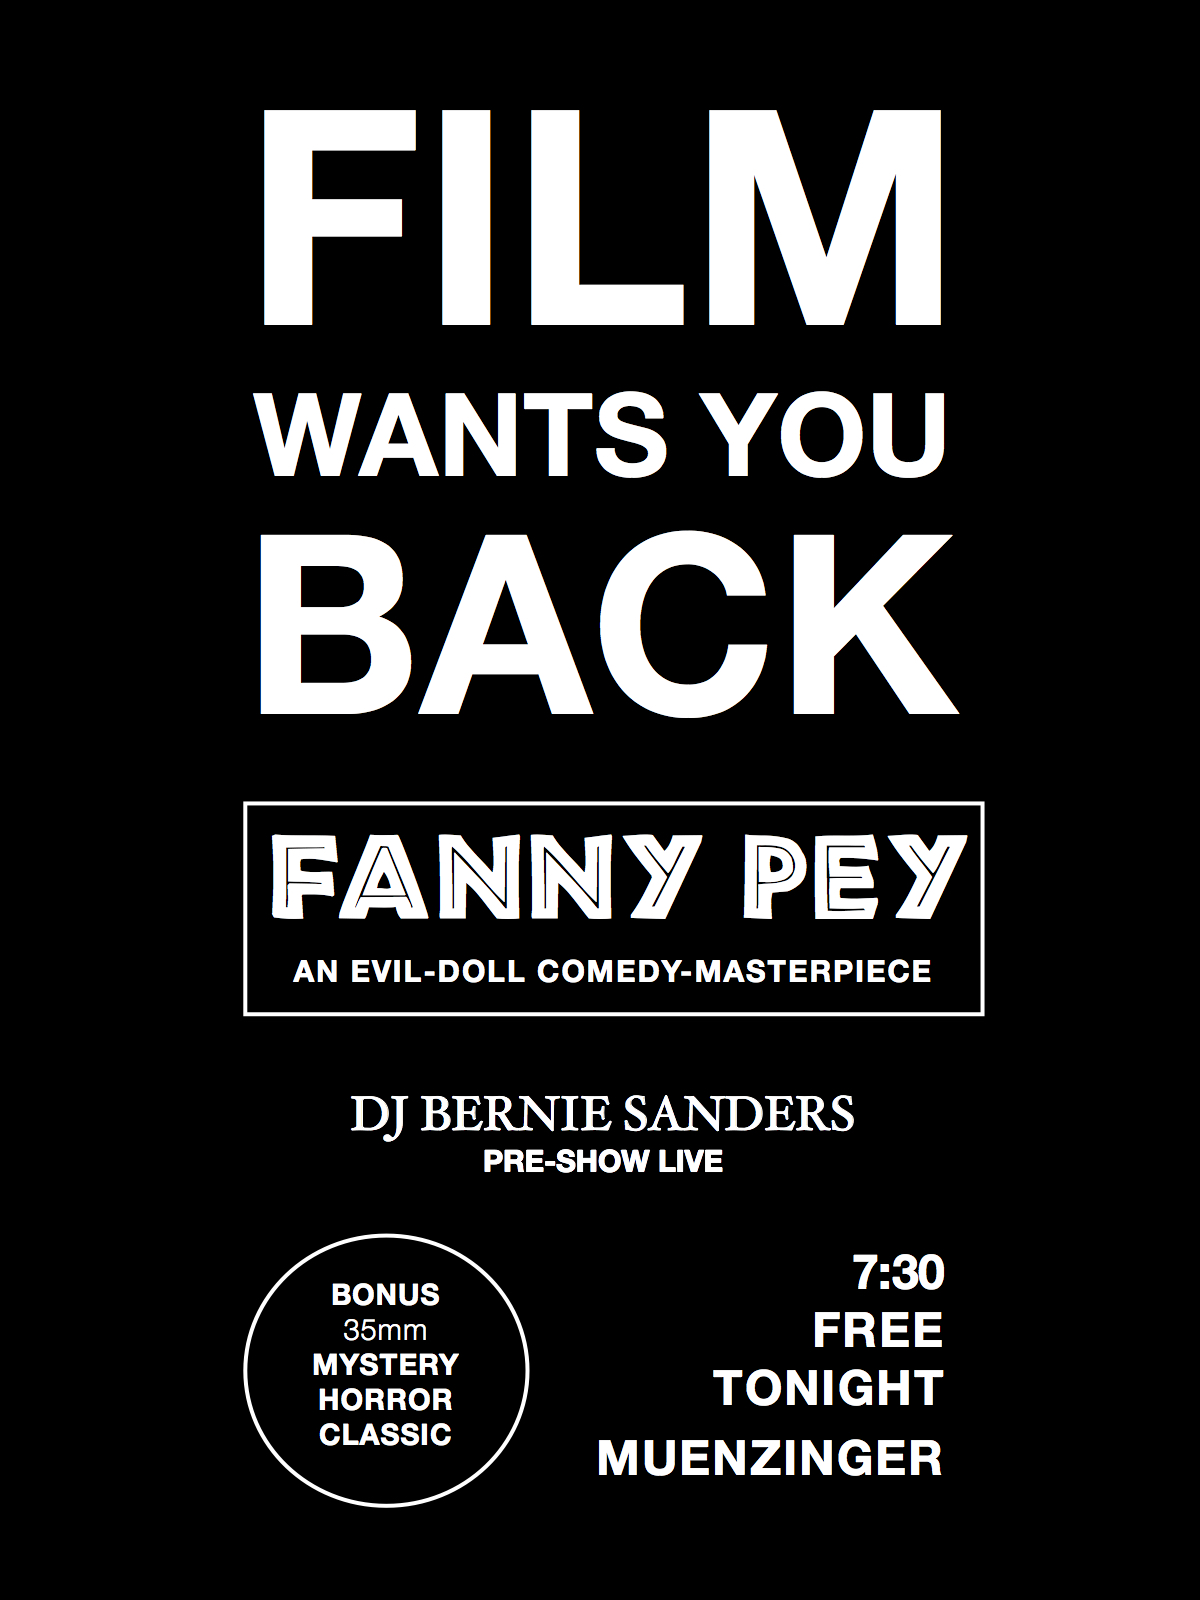 IFS Halloween FANNY PEY Screening (free admission)